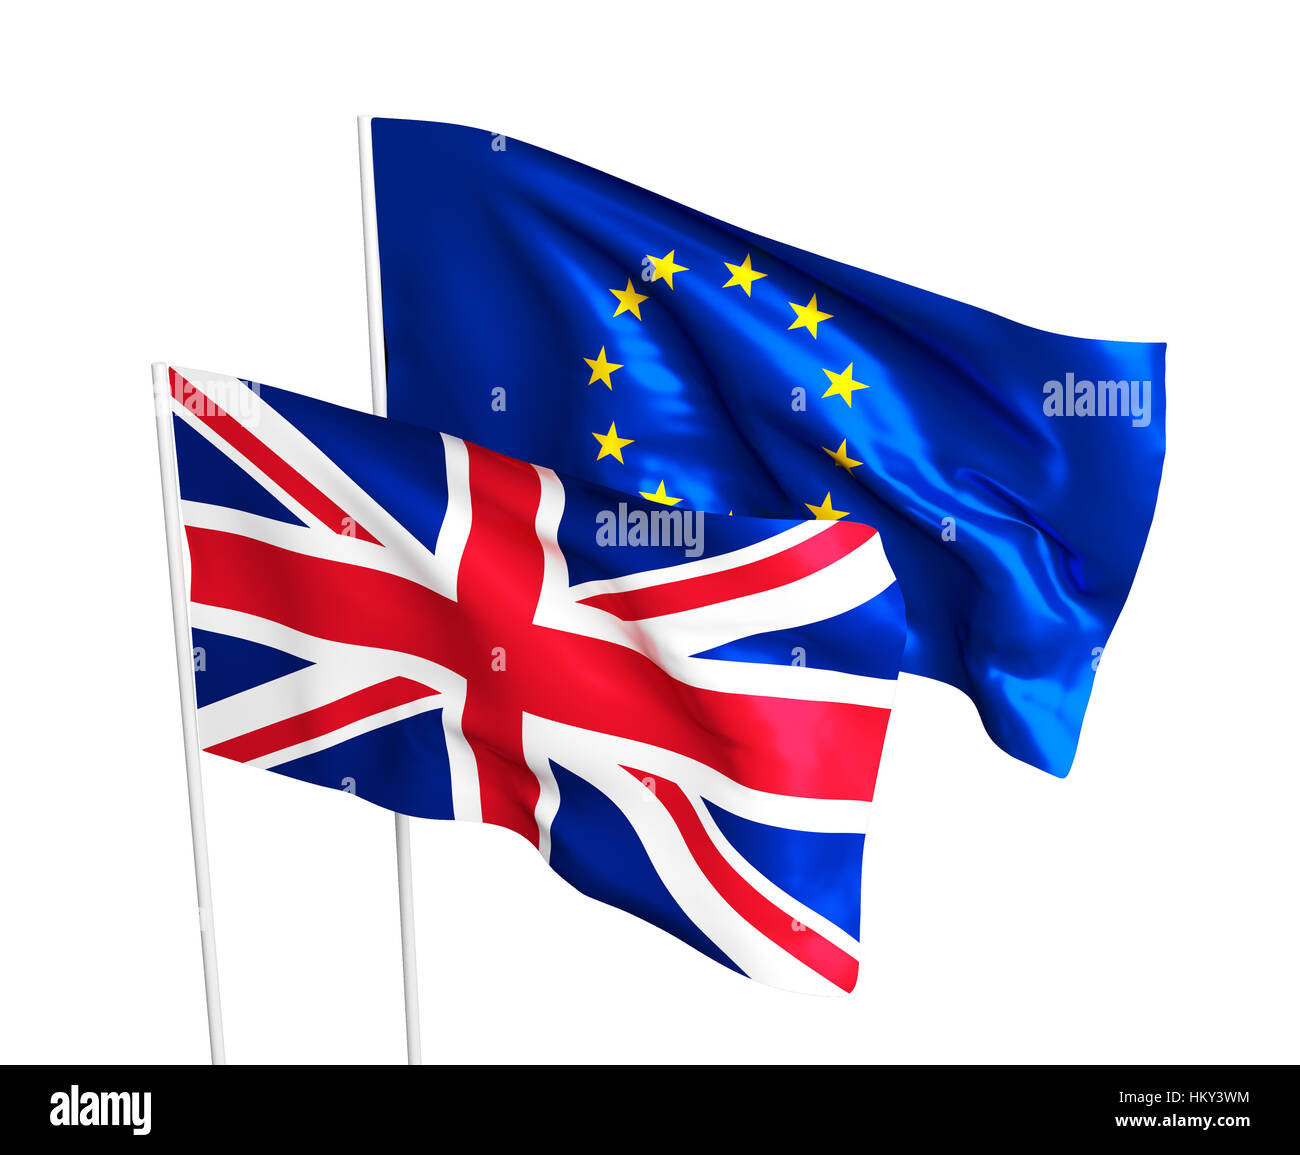 Flags of the United Kingdom and the European Union. Brexit referendum. British leaves EU. Flag isolated on the white - Stock Image